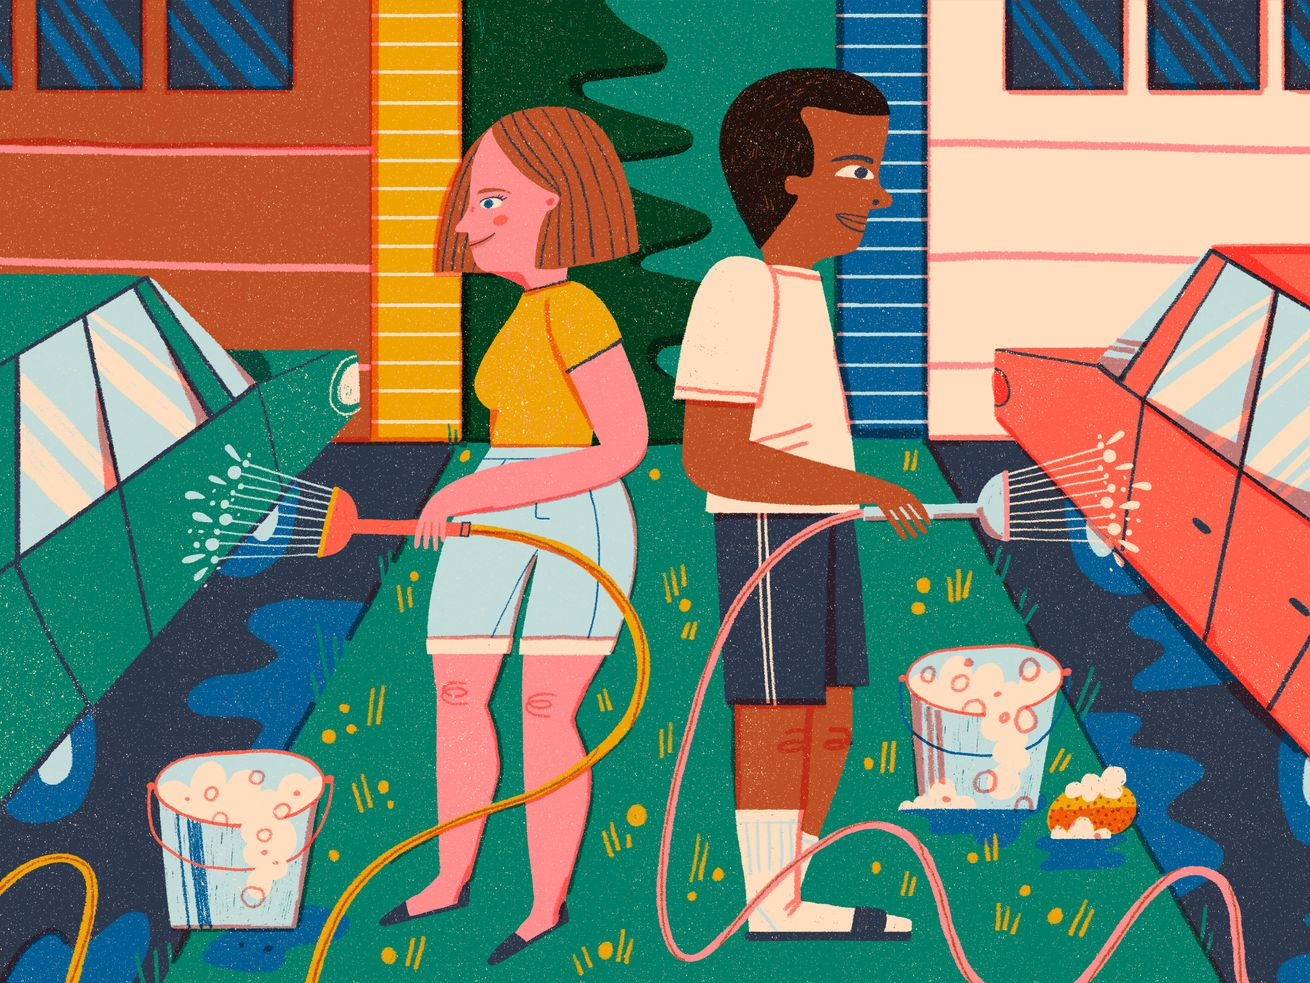 Two neighbors stand back to back rinsing their parked cars with hoses in their driveways. There are two matching buckets filled with soapy water and sponges between them. Illustration.